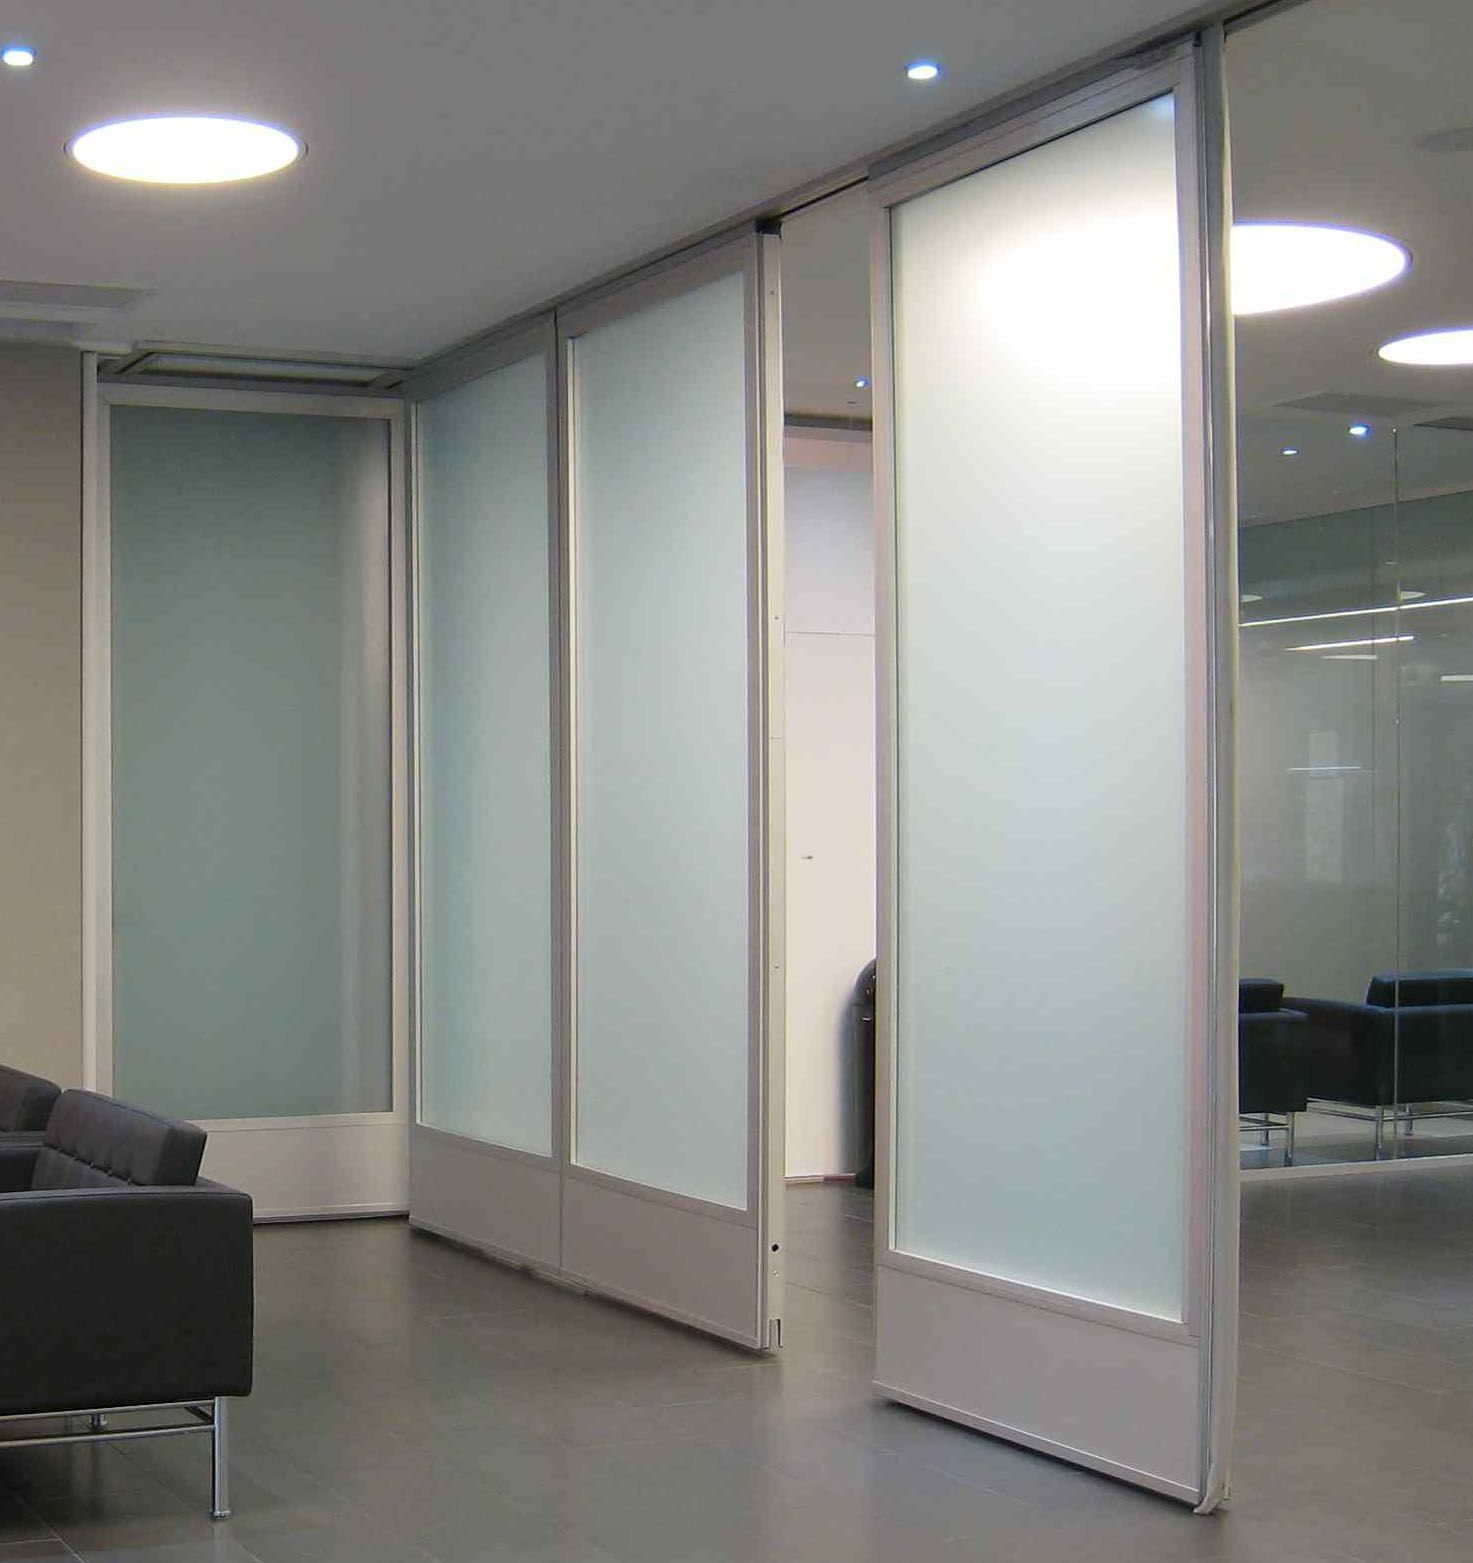 Movable glass doors glass wall hufcor work student life center pinterest divider glass Interior glass partition systems